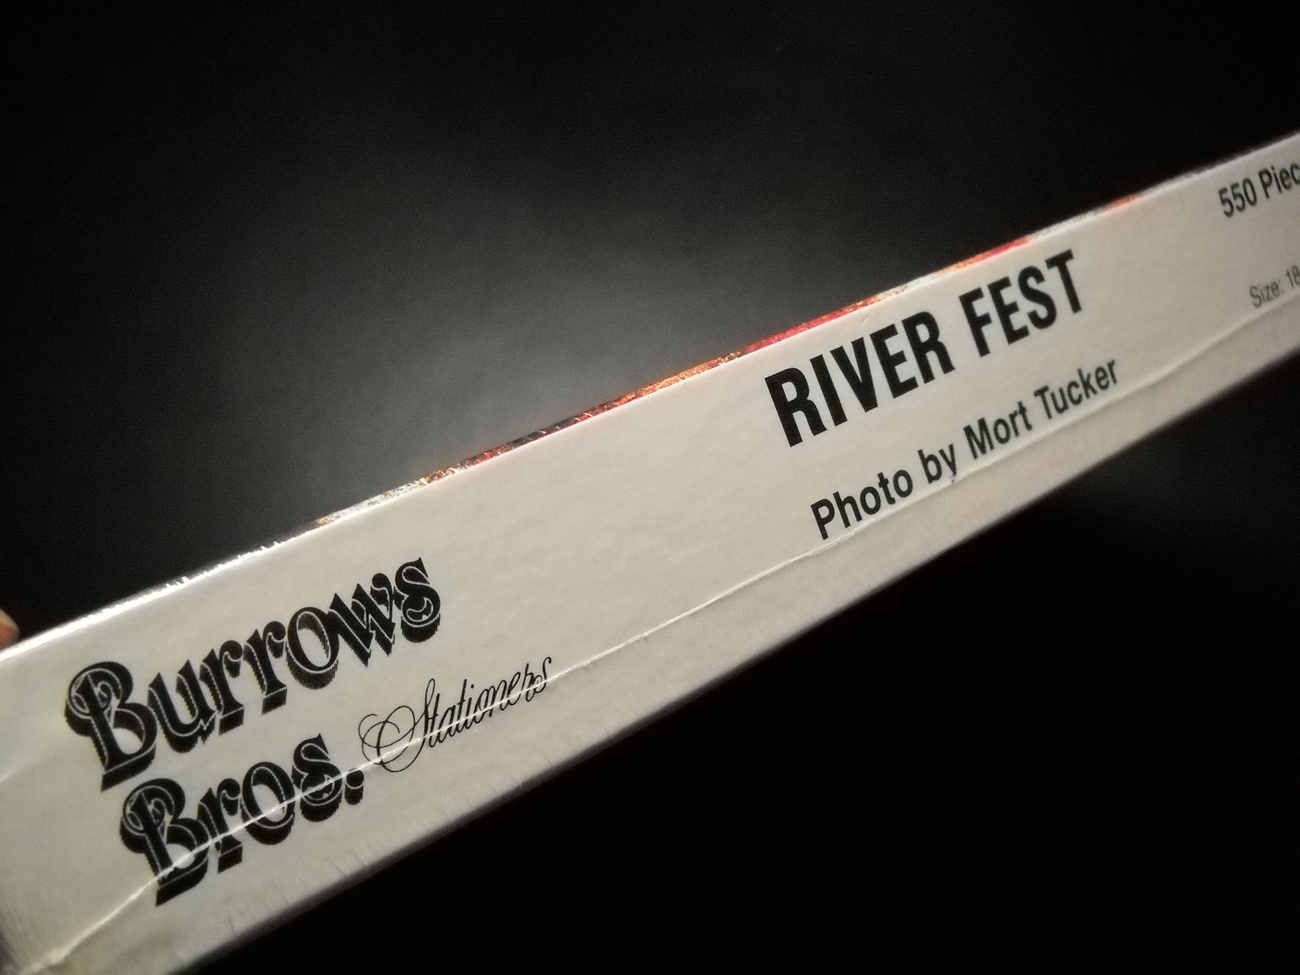 Burrows Bros Jigsaw Puzzle River Fest Cleveland Mort Tucker Photography Sealed